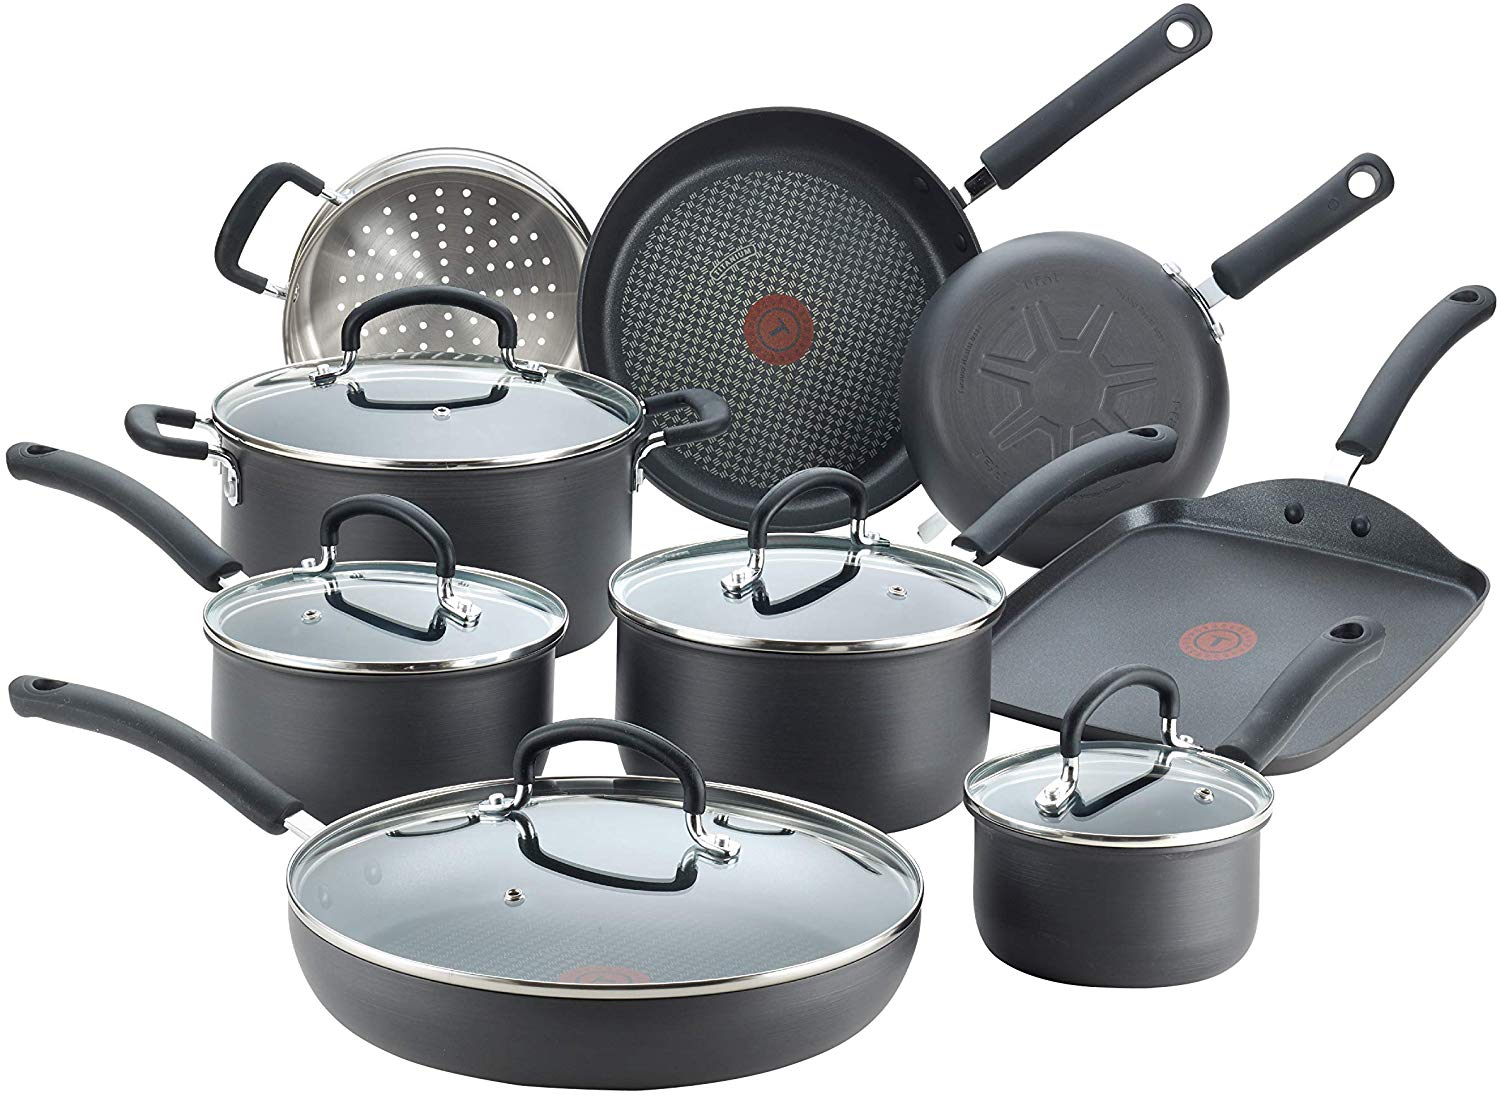 T-fal Ultimate Hard Anodized Nonstick 14 Piece Cookware Set